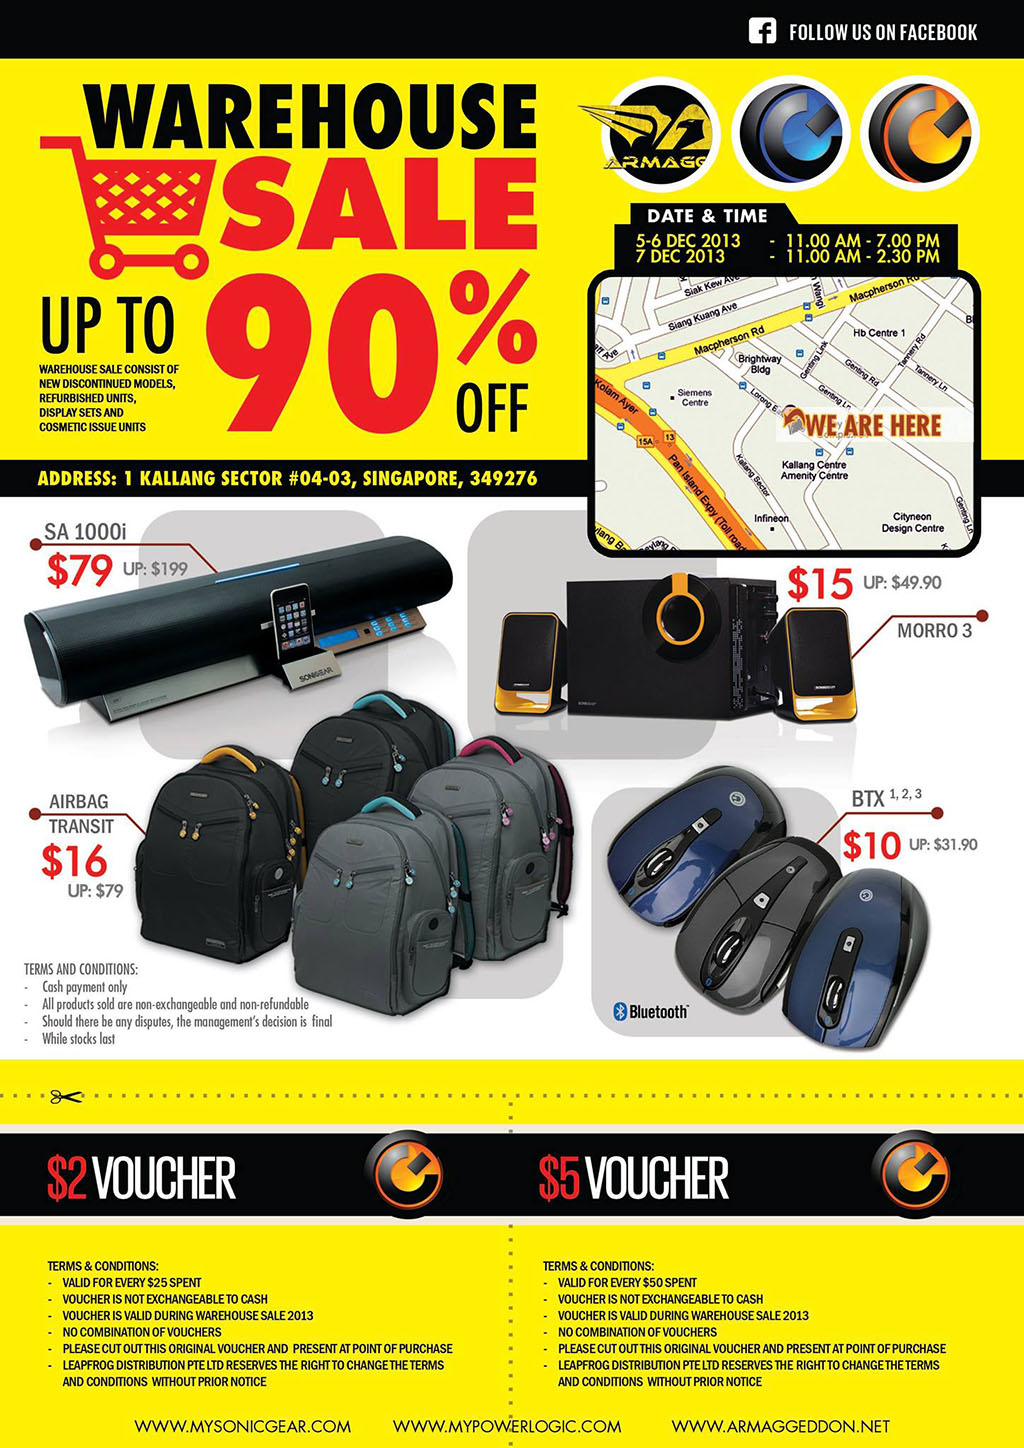 Sonic Gear Warehouse Sale 2013 @ Kallang: Up To 90% Discounts On PC Speakers & Accessories